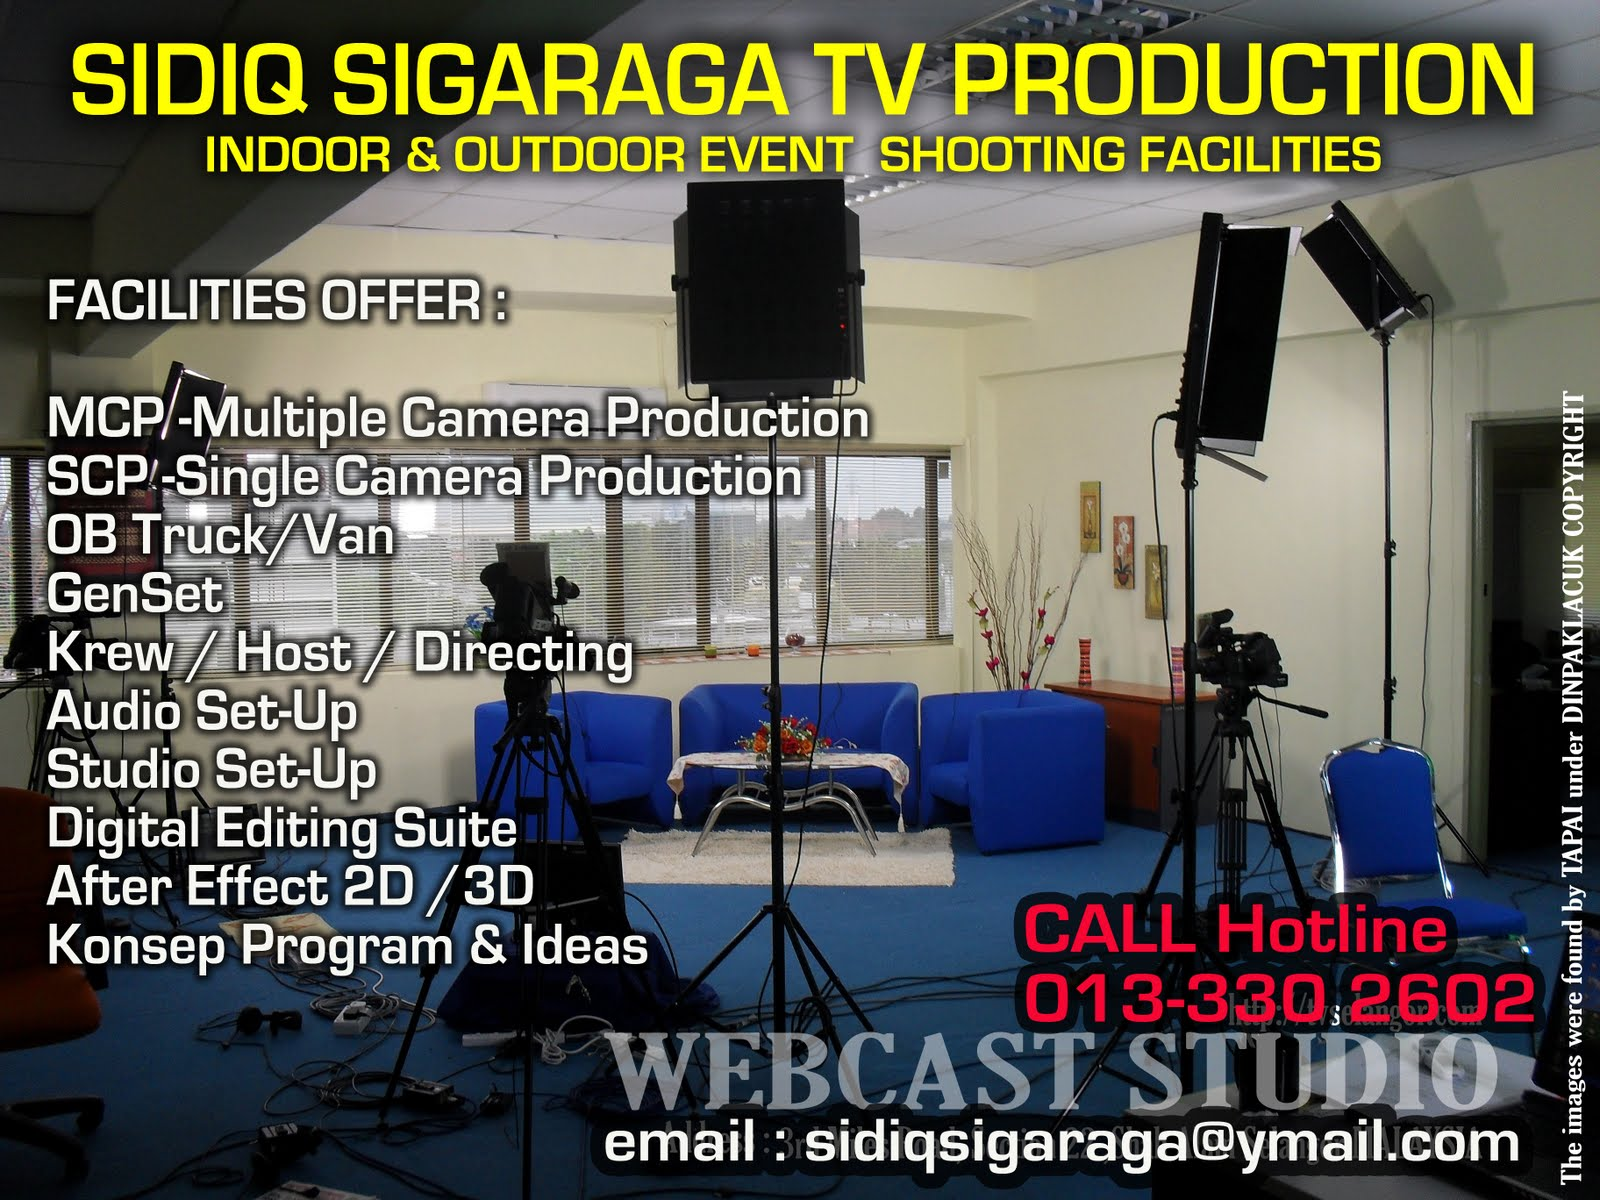 SIDIQ SIGARAGA TV PRODUCTION